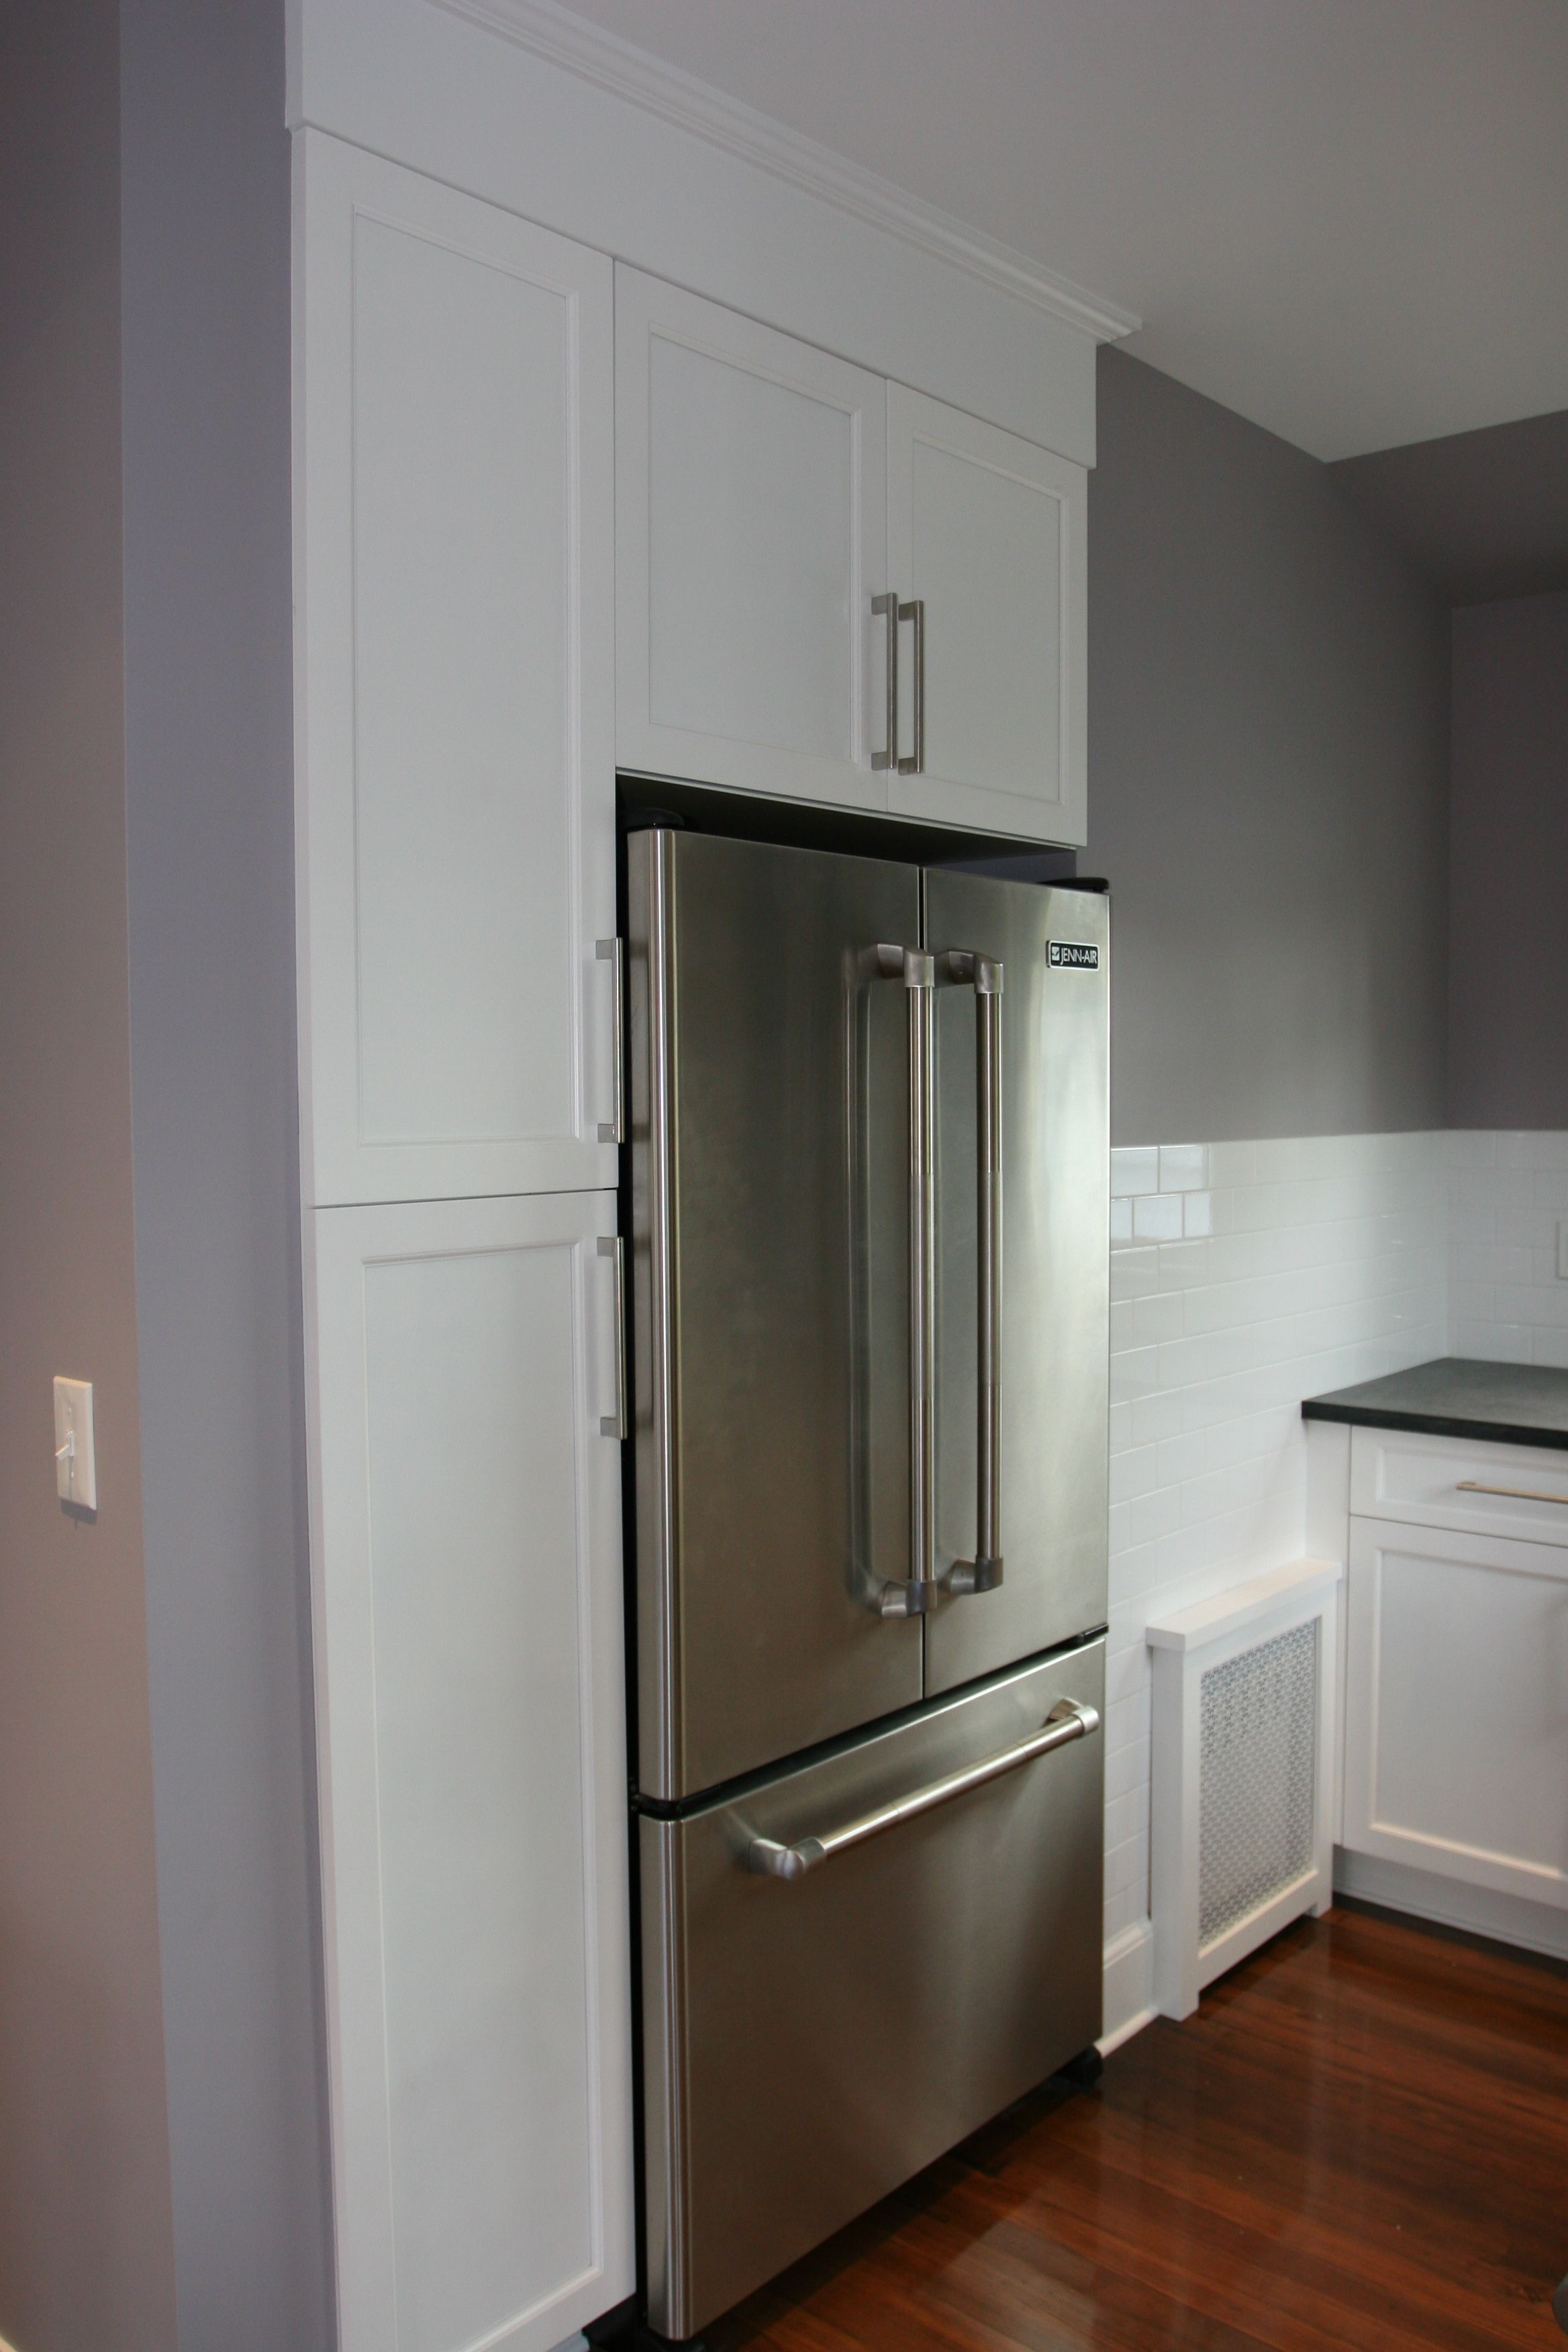 Built in Refrigerator Drawers Refrigerator Drawers Built in